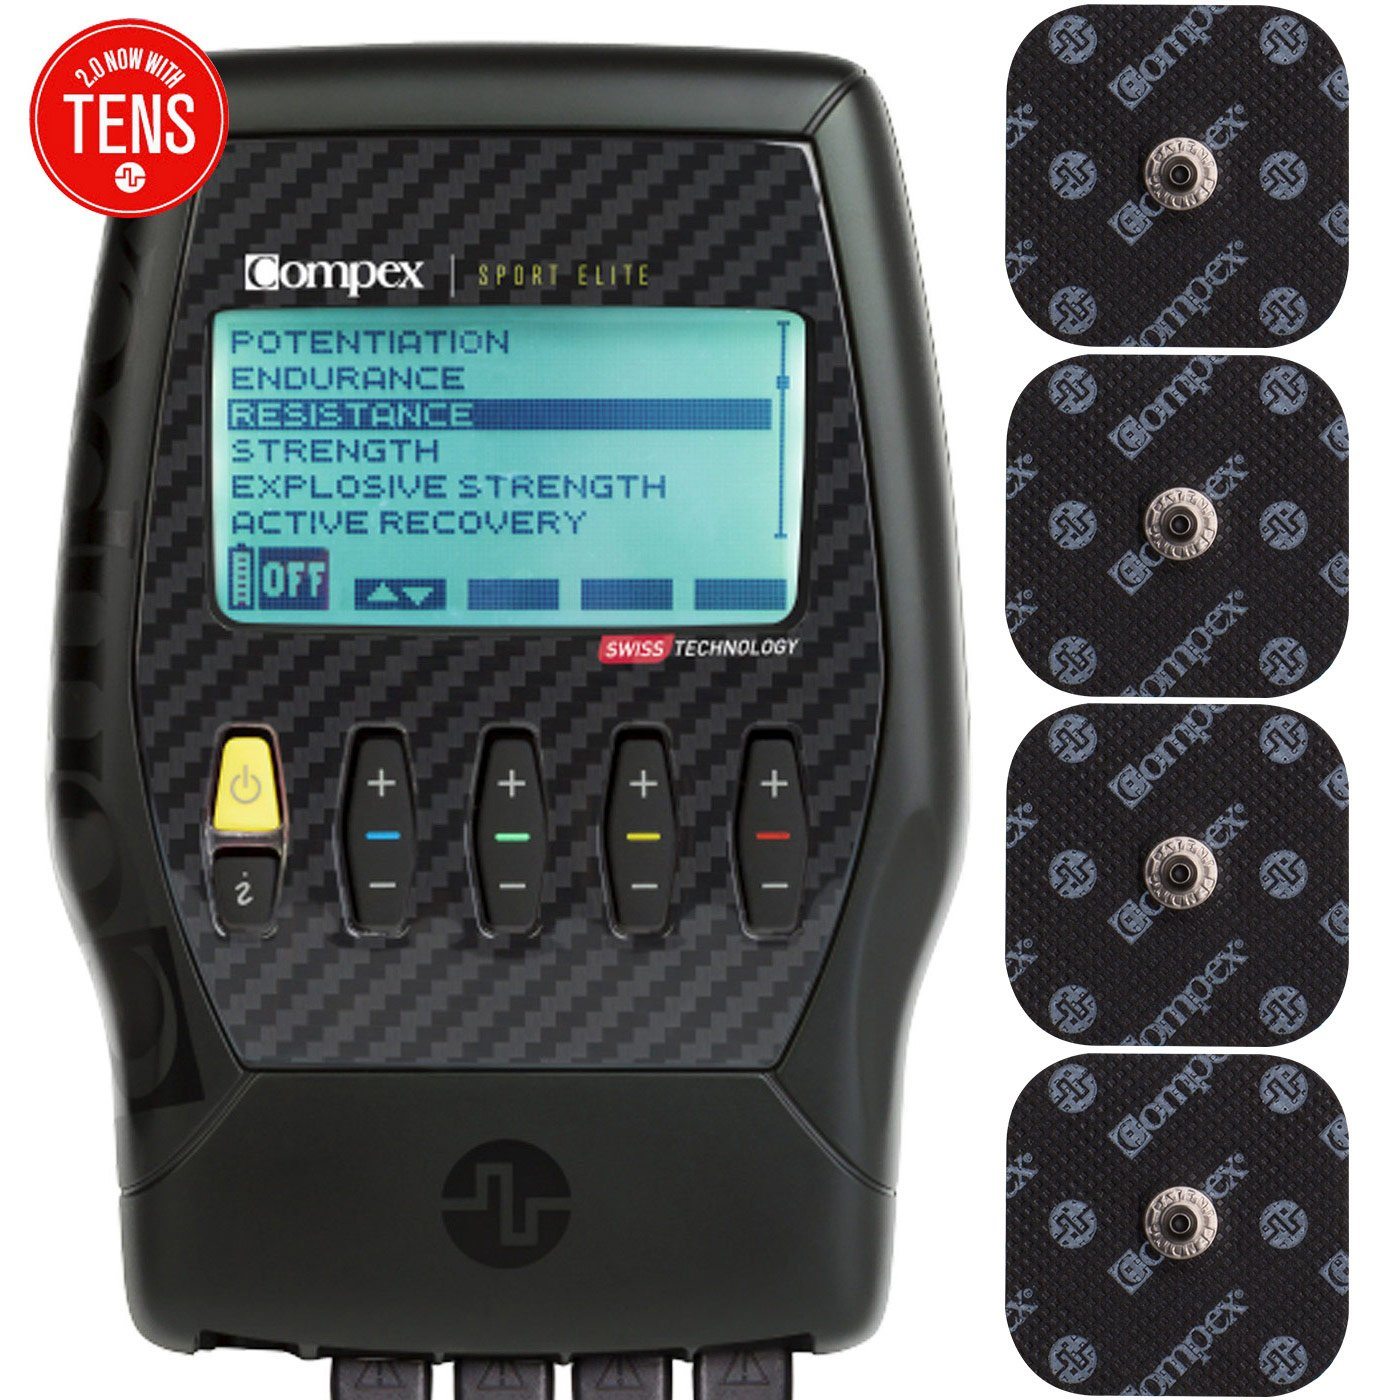 Compex Sport Elite 2.0 Muscle Stimulator with TENS Bundle Kit: Muscle Stim, 12 Snap Electrodes, 10 Programs, Lead Wires, Battery, Case / 4 strength, 2 warm-up, 3 recovery, 1 TENS by Compex